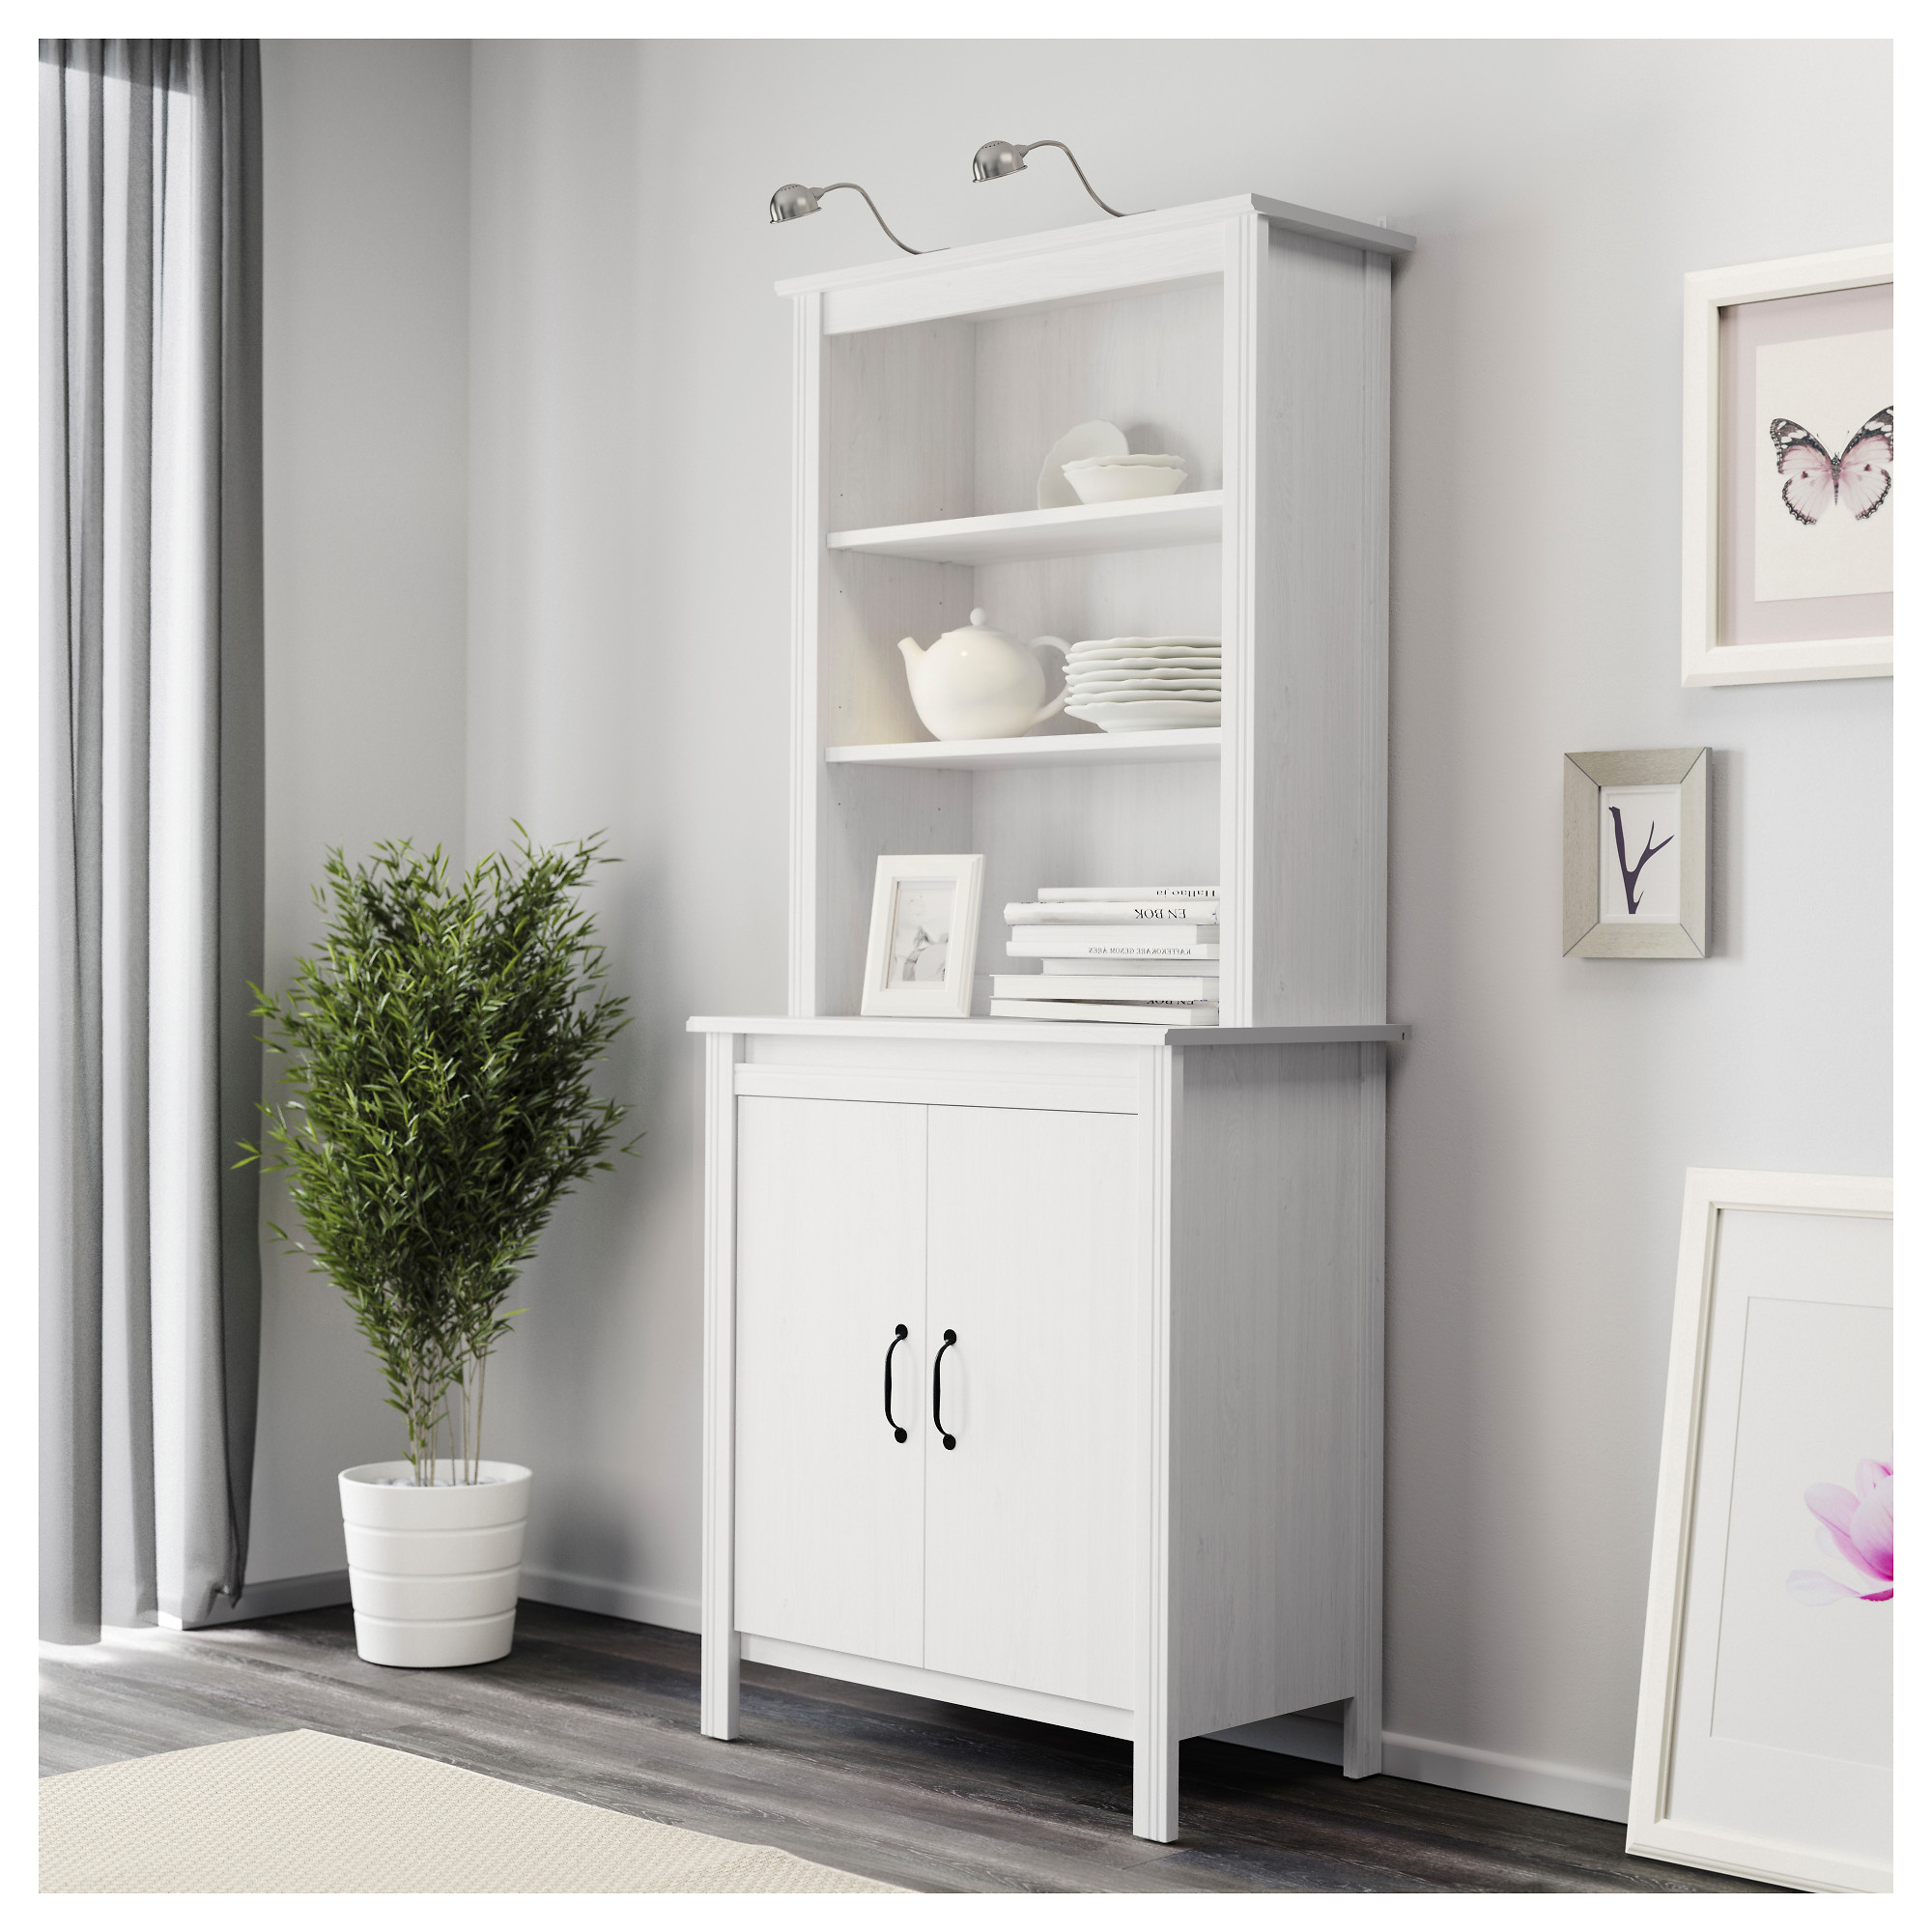 BRUSALI High cabinet with doors - white - IKEA